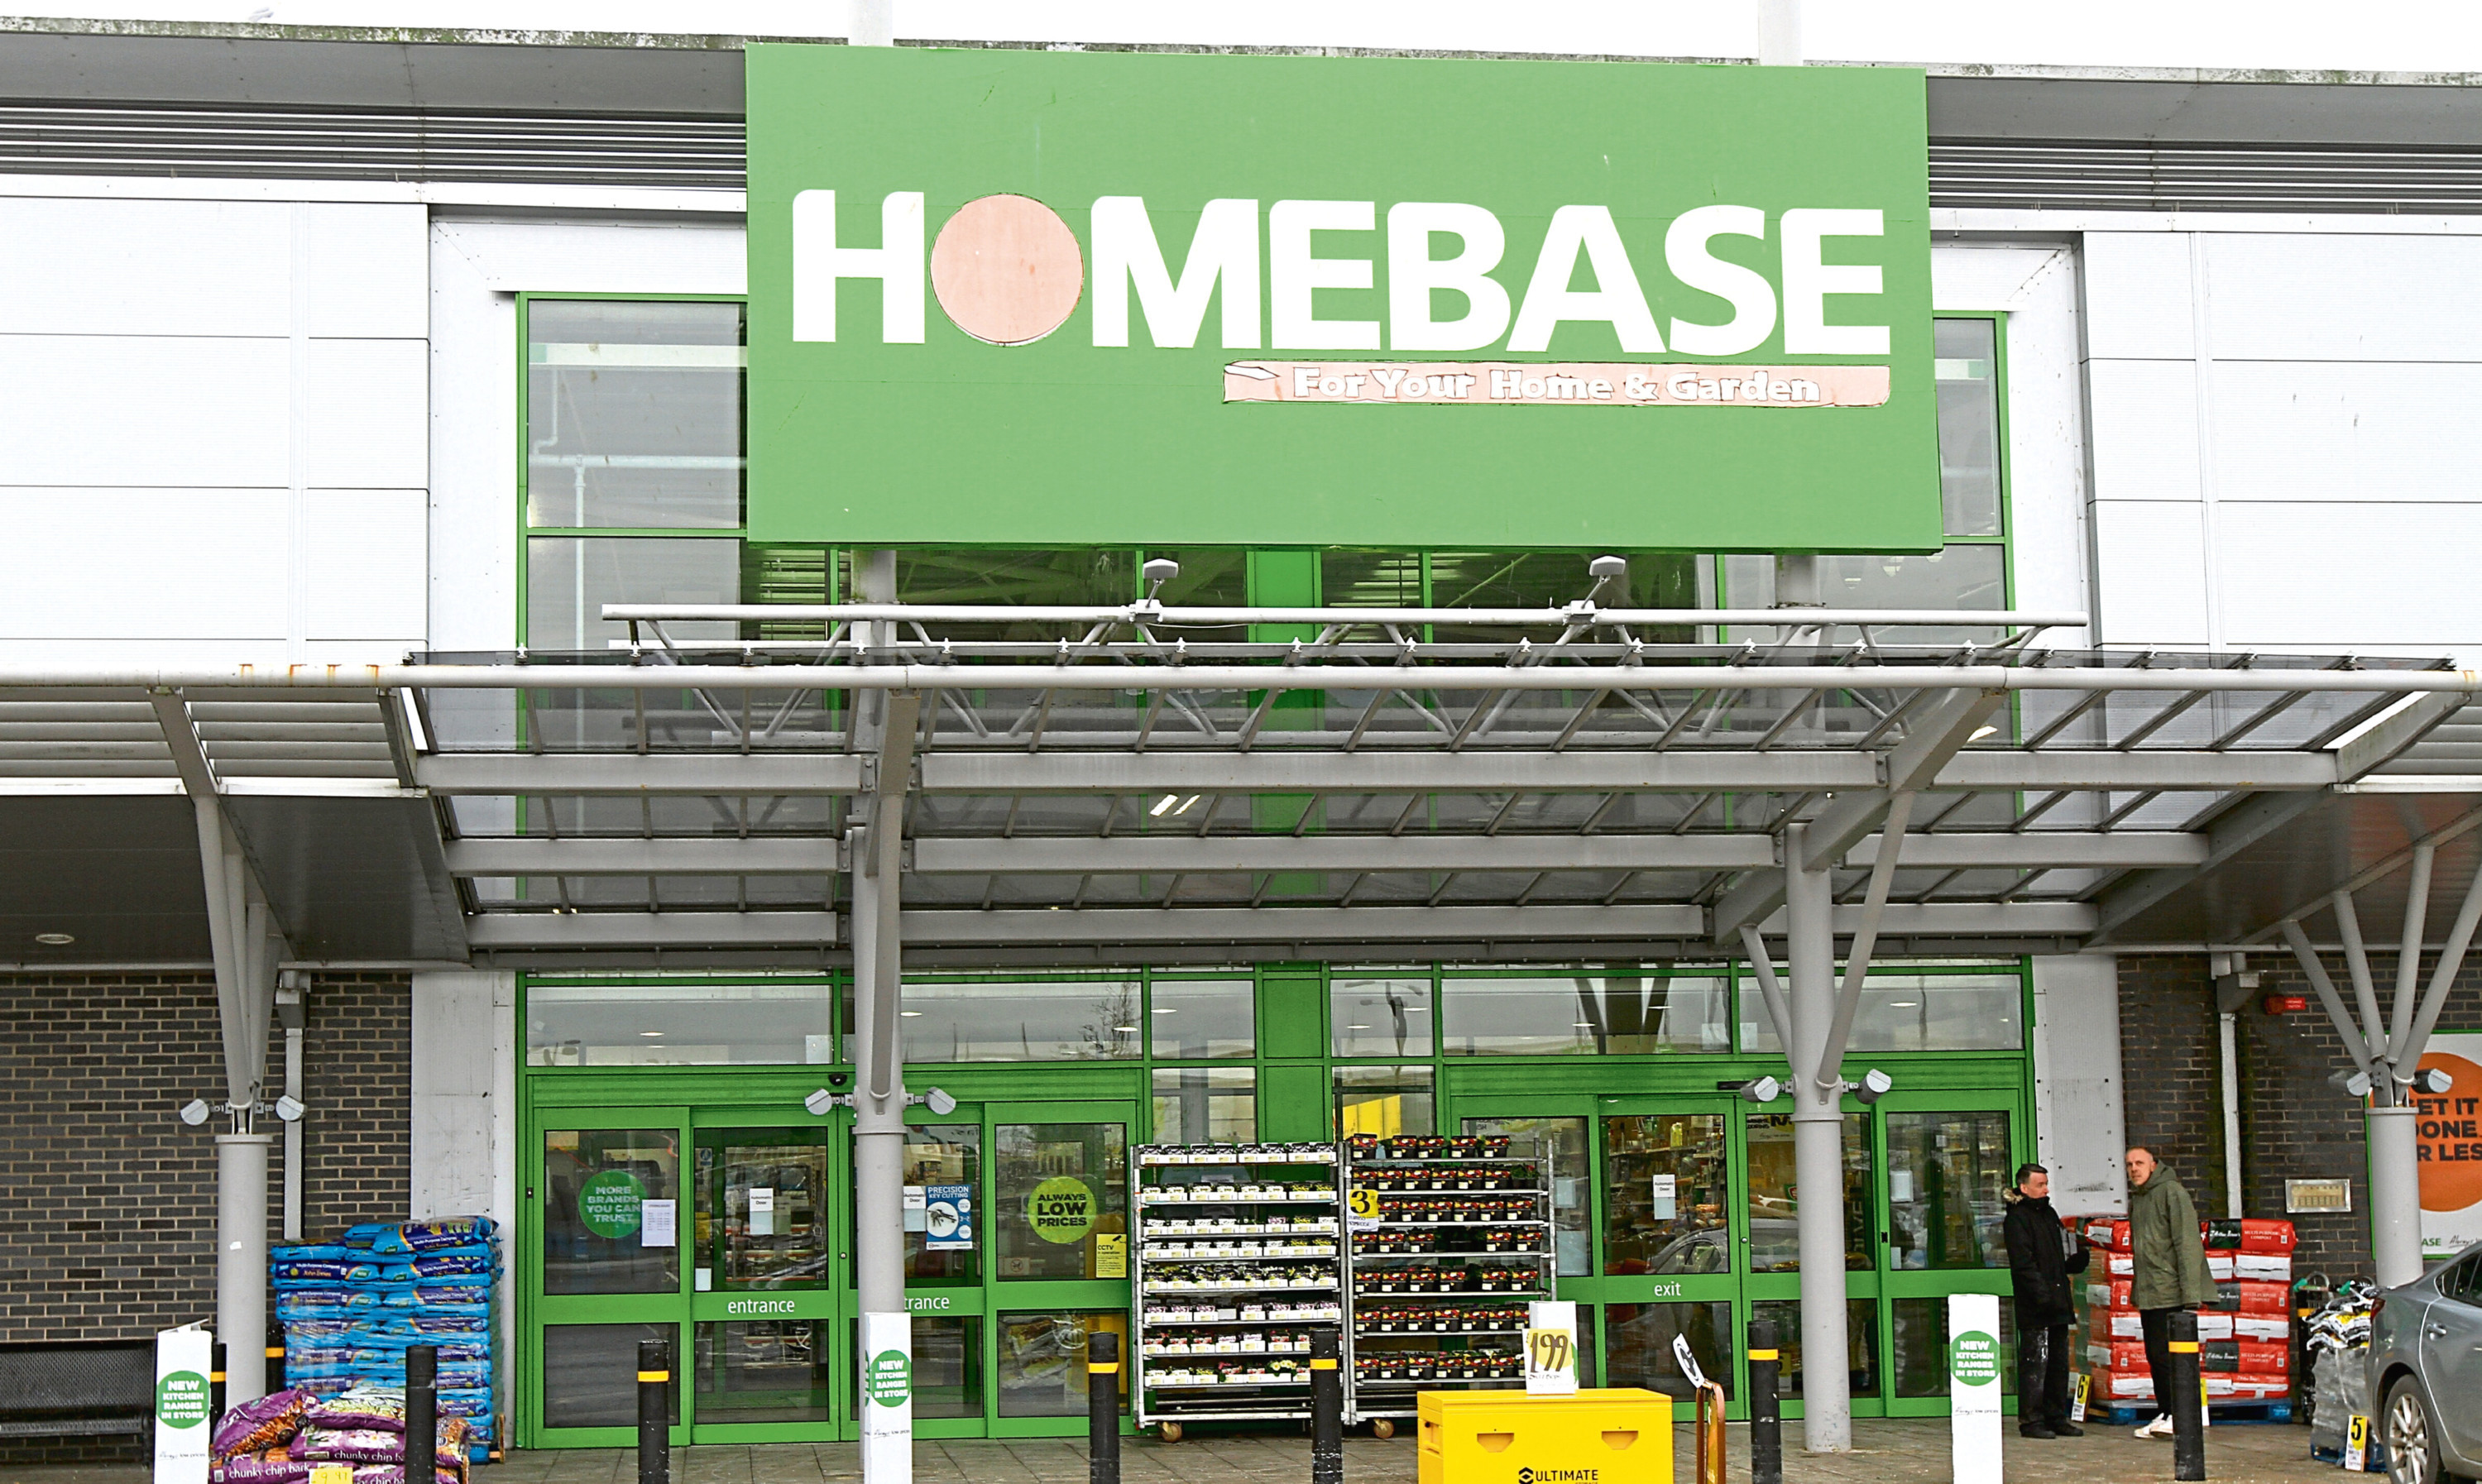 The Homebase branch at the Kingsway Retail Park in Dundee.